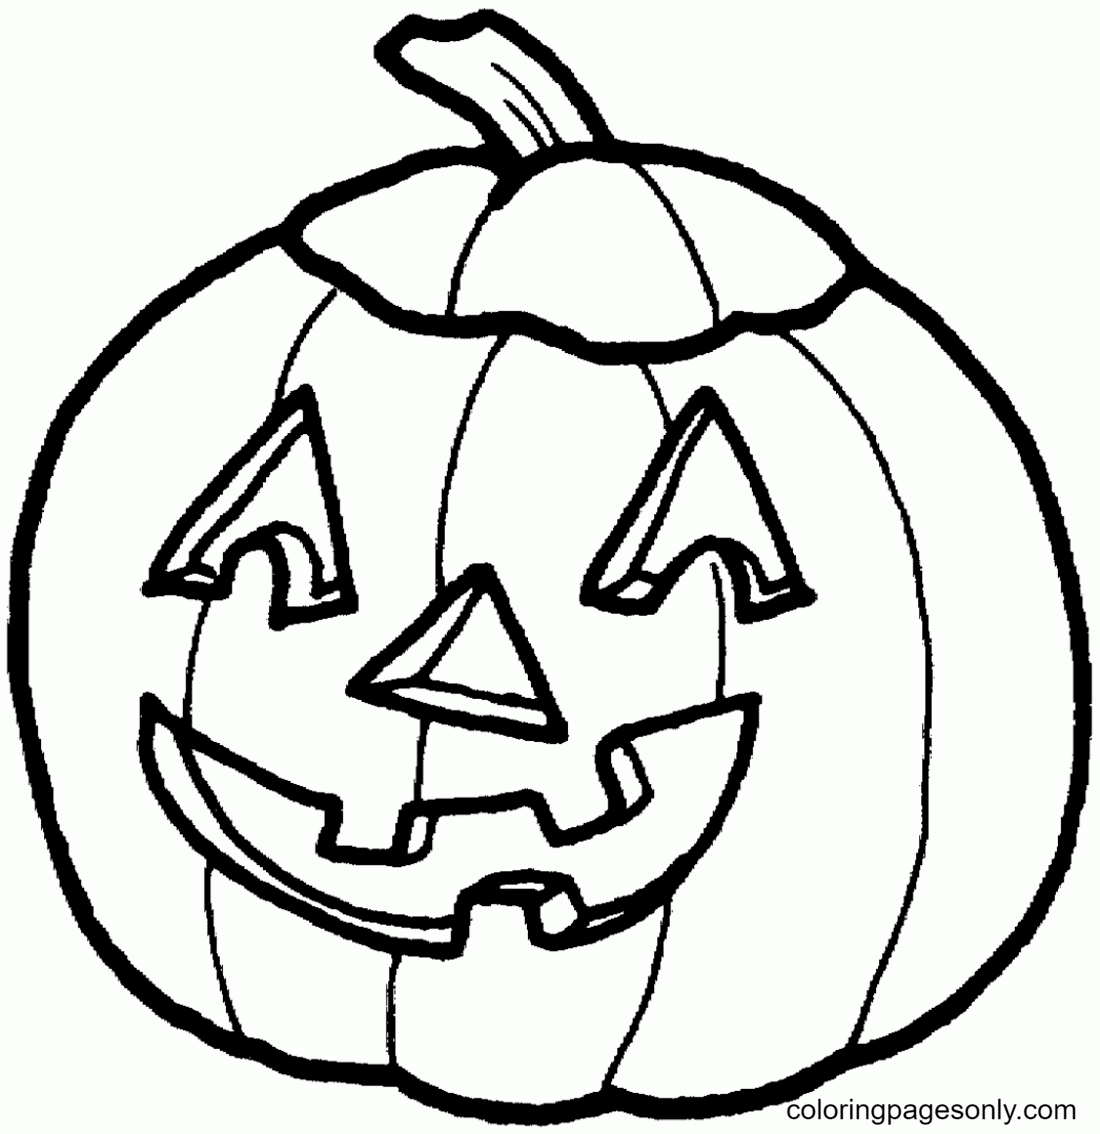 Pumpkin Halloween Free Coloring Page